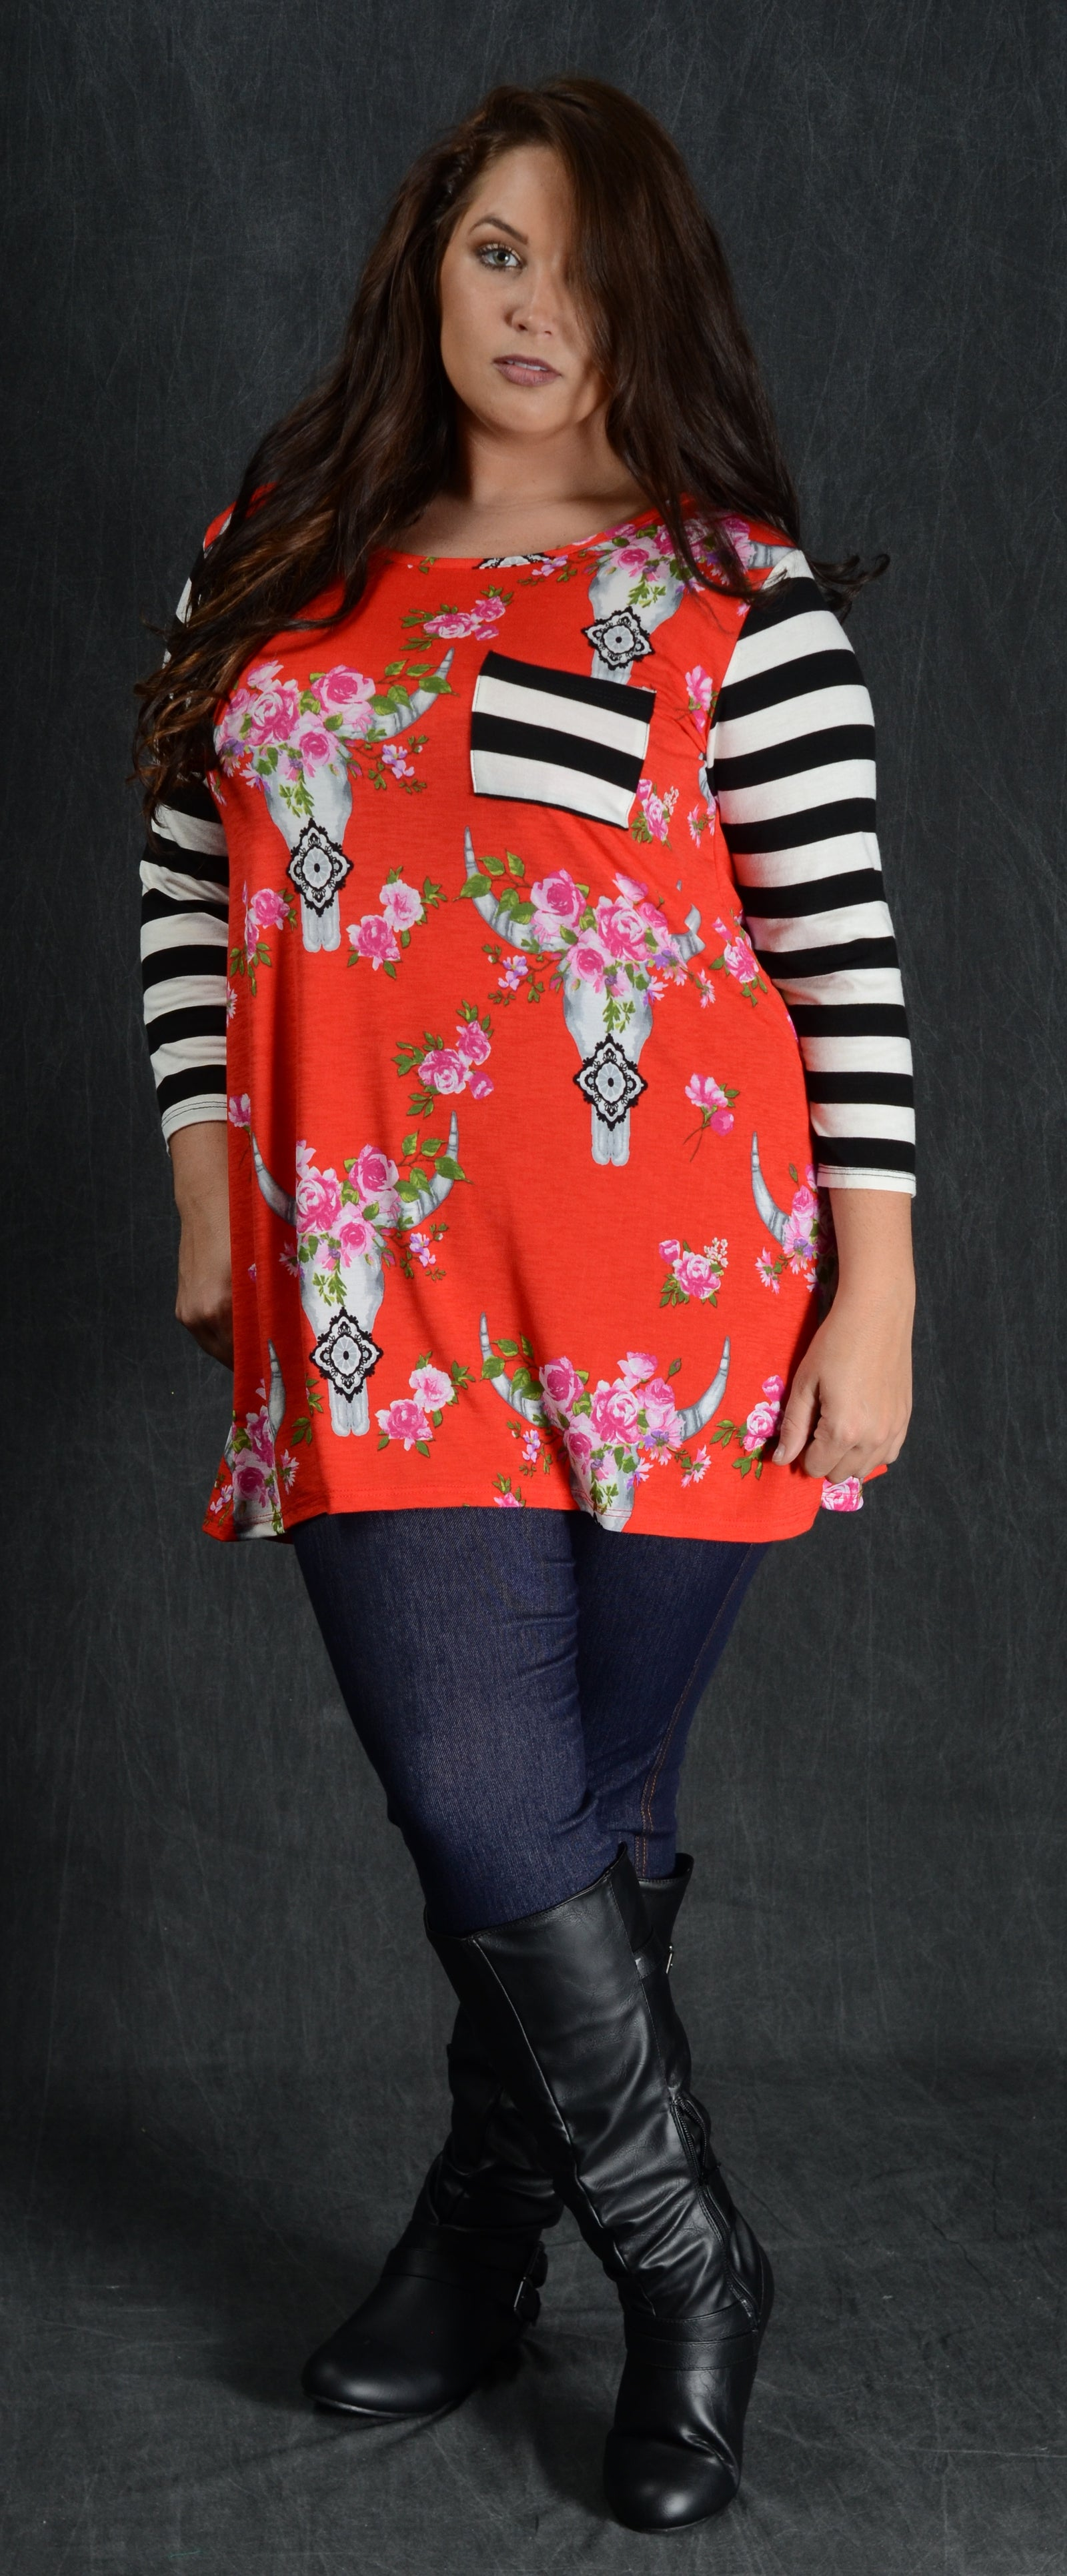 Red & Floral Bullhead Stripe Top - www.mycurvystore.com - Curvy Boutique - Plus Size